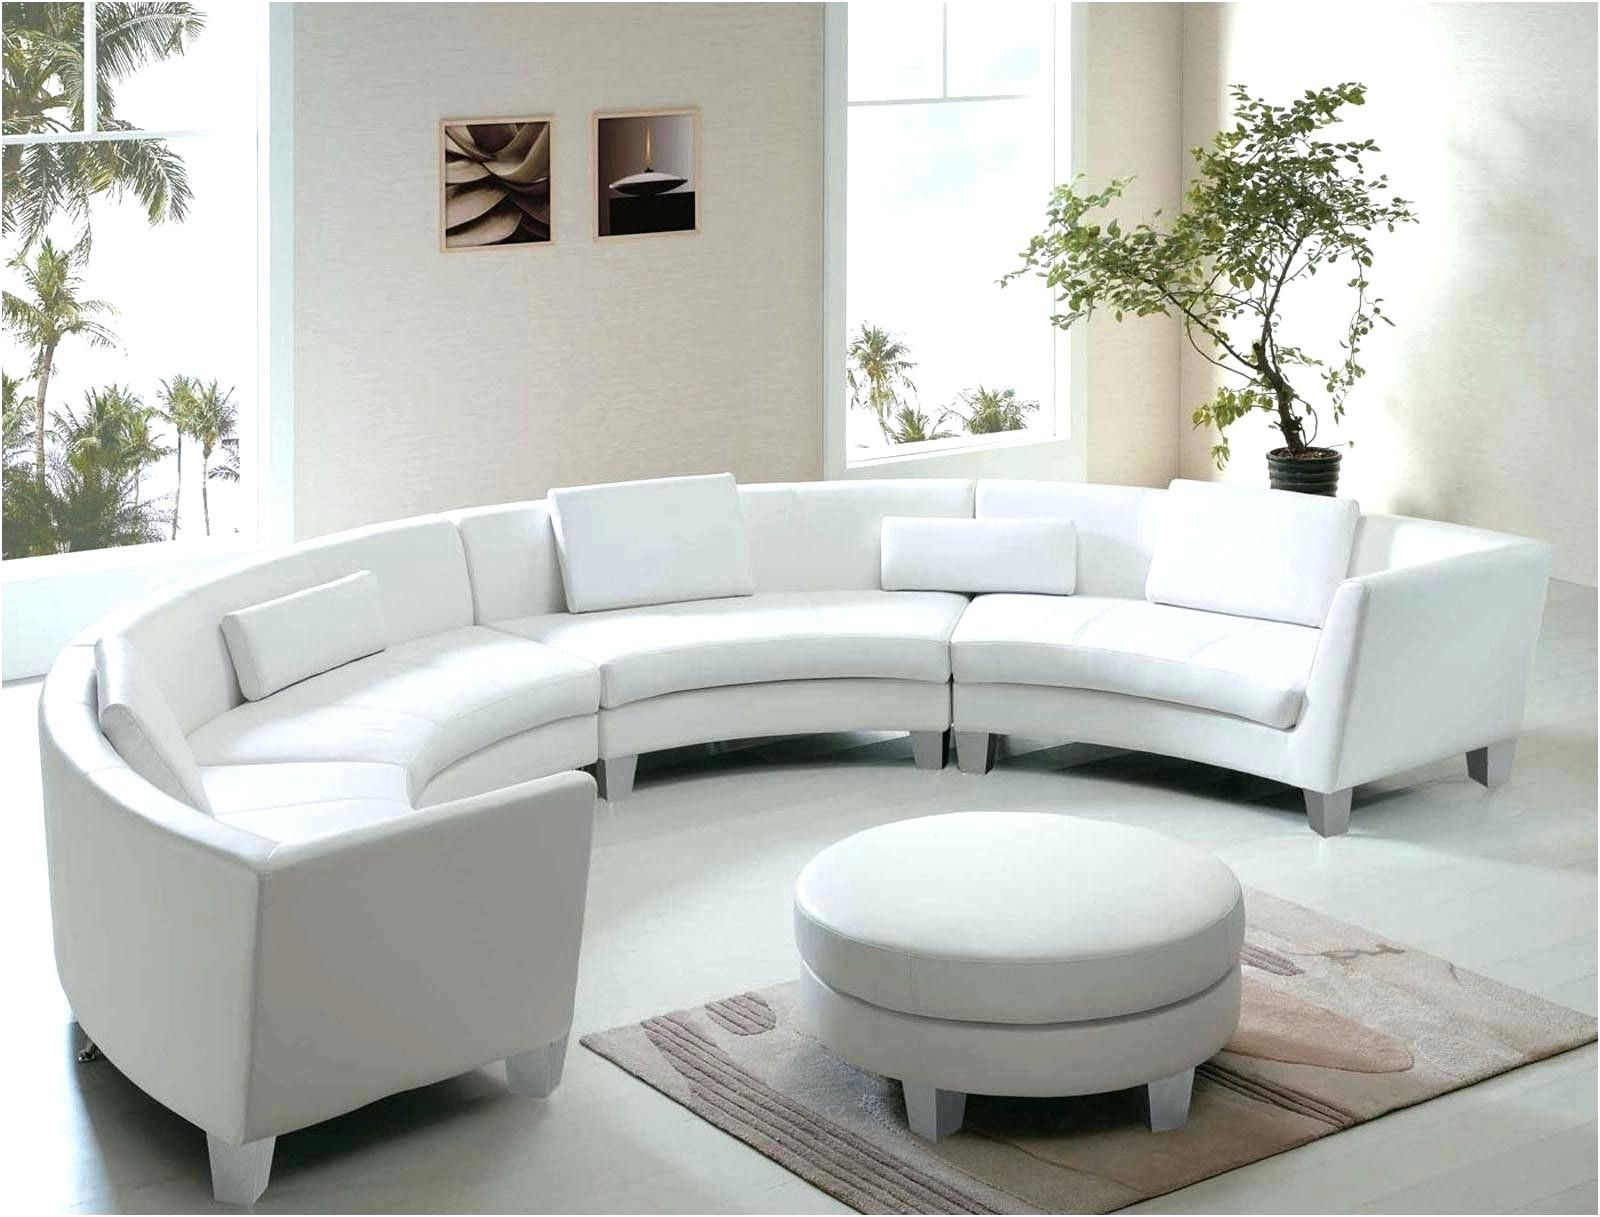 Genial Sconto Couch   Circle sofa, Circular couch, Curved sofa